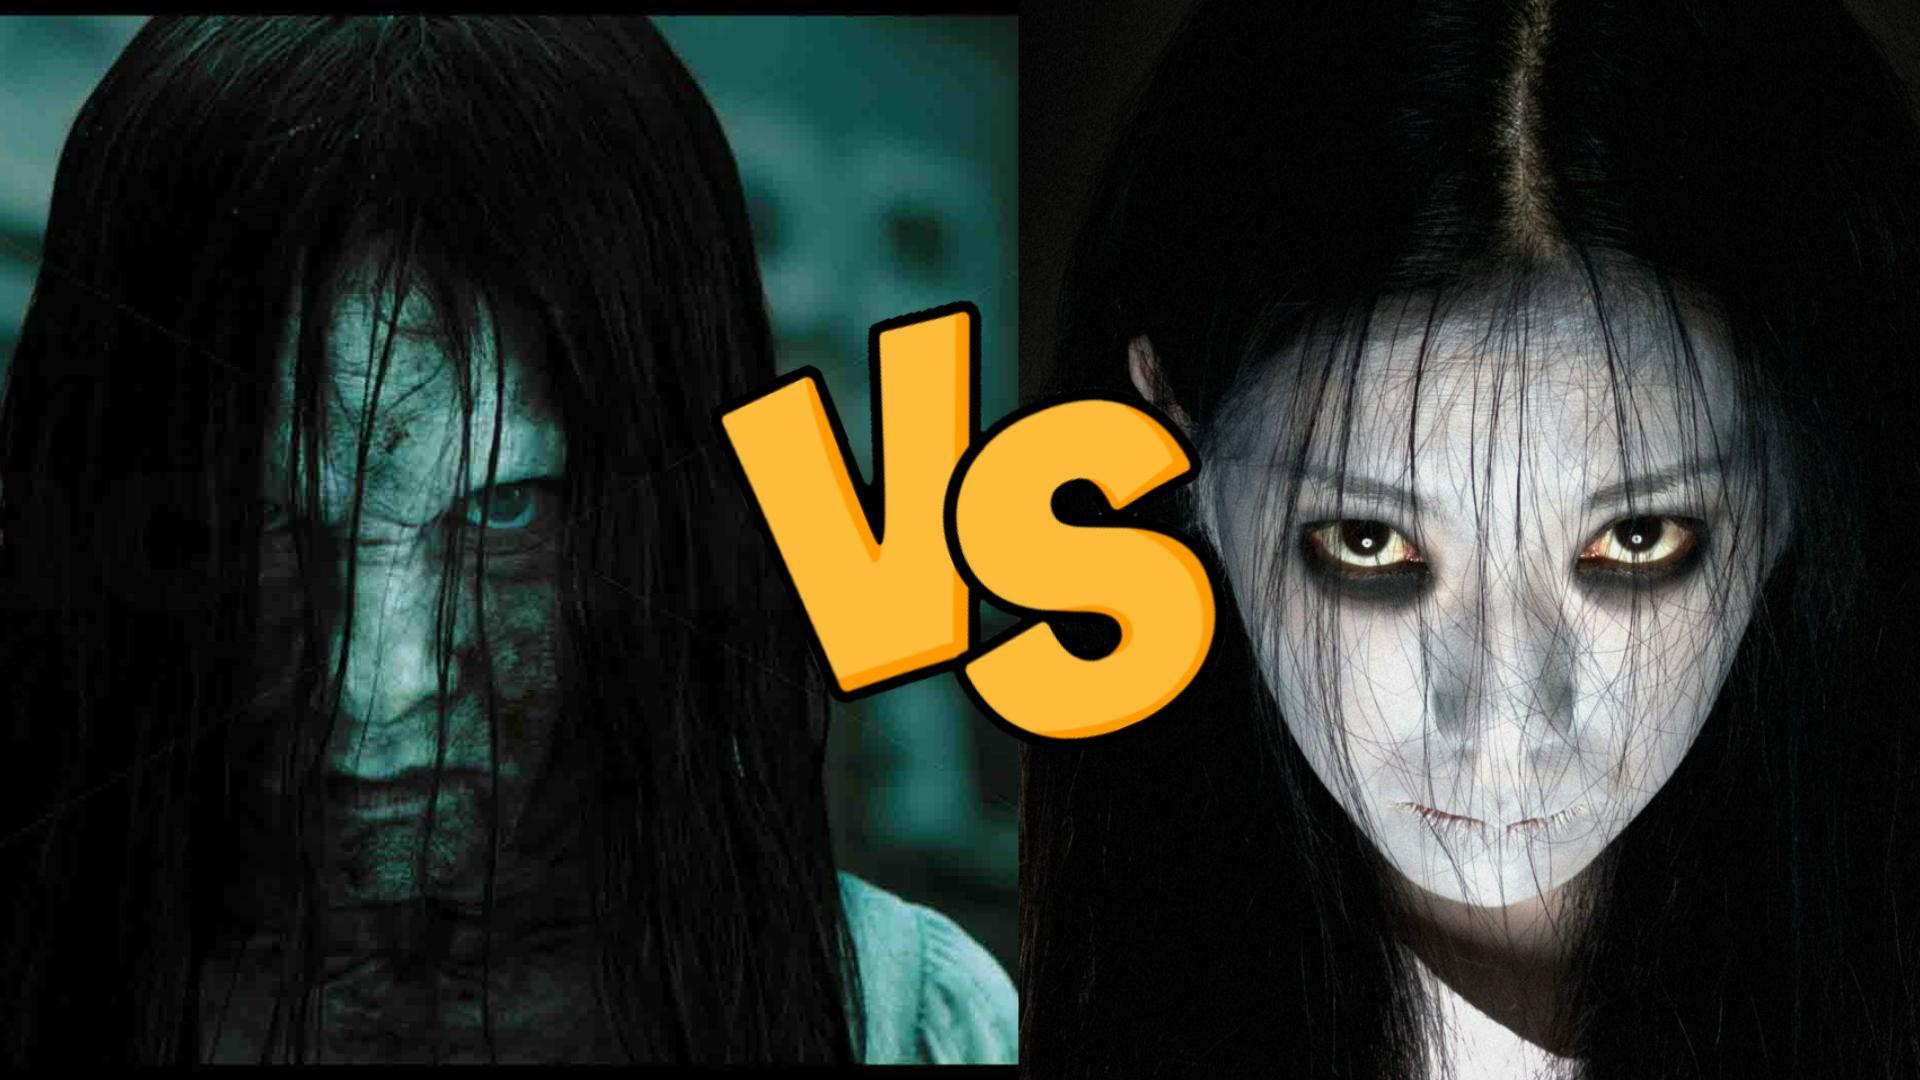 Which movie is scarier The Ring or The Grudge?